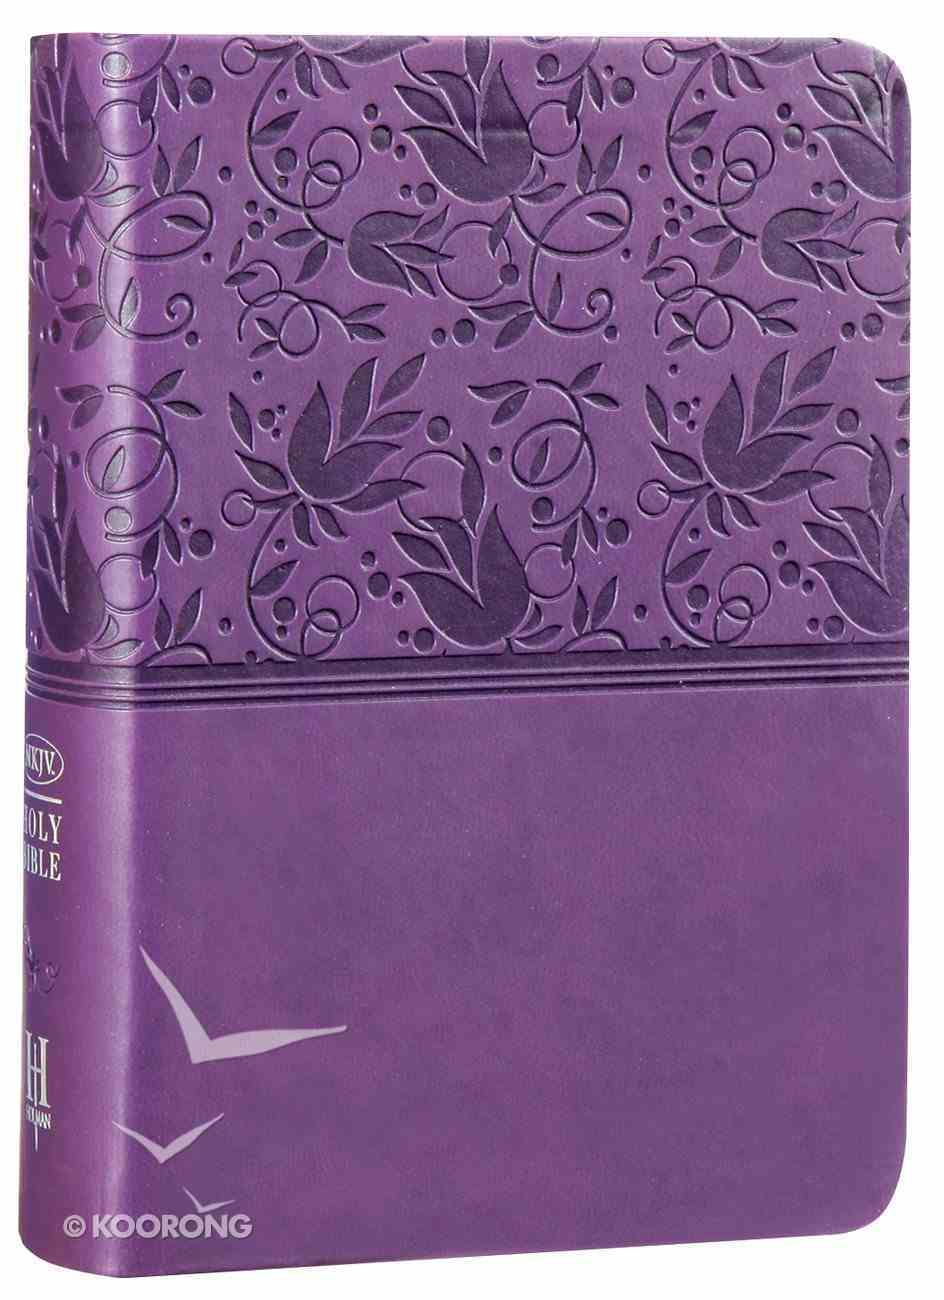 NKJV Large Print Compact Reference Bible Purple Premium Imitation Leather